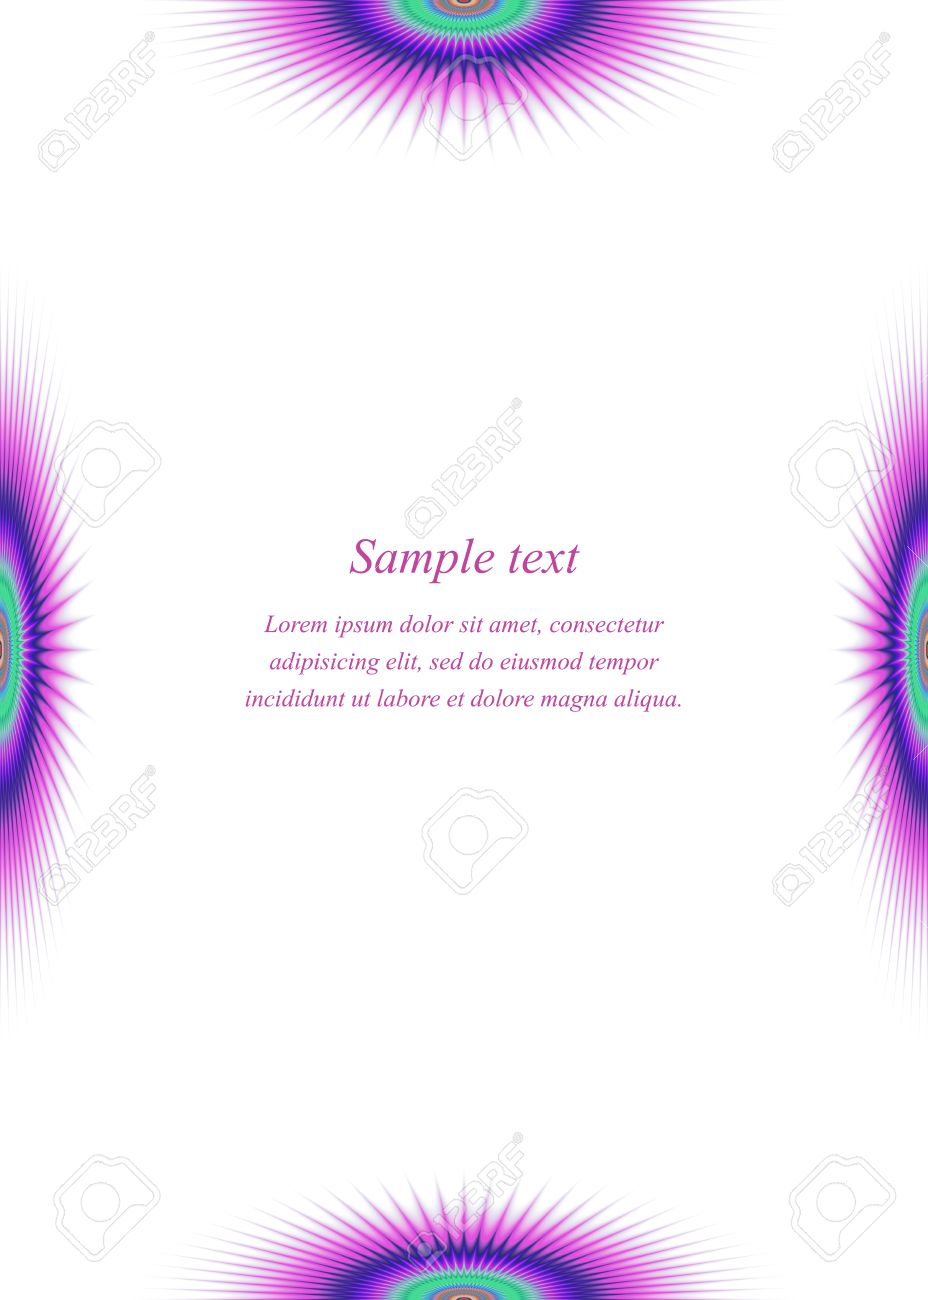 Colorful Page Border Design Template For Brochure Royalty Free Colorful Page Border